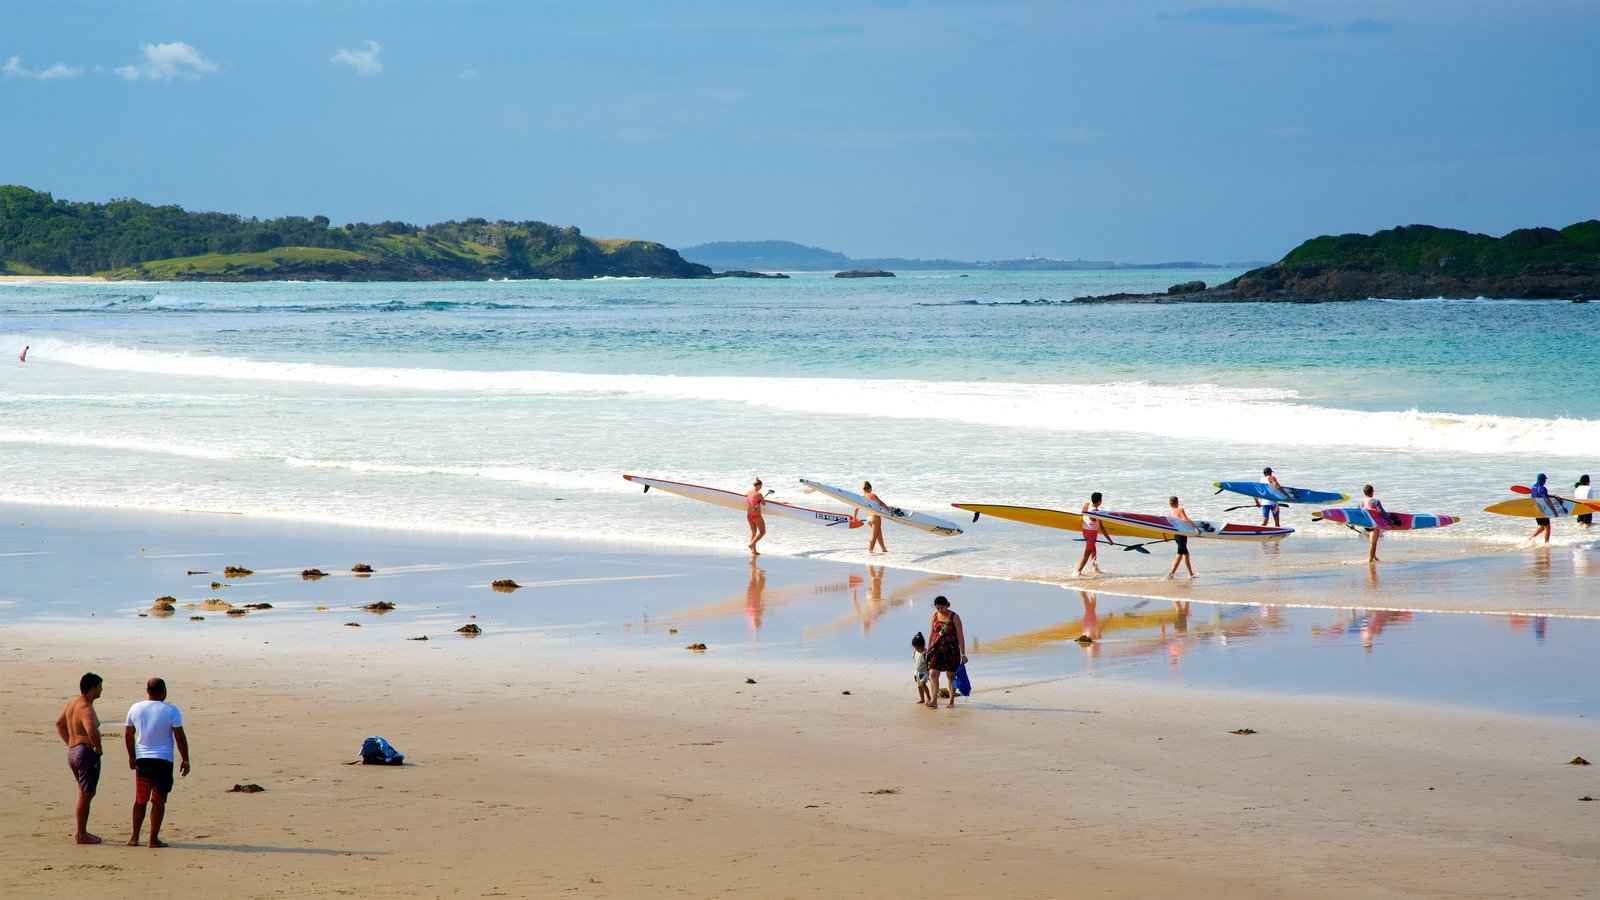 Coffs Harbour which includes kayaking or canoeing, general coastal views and a sandy beach